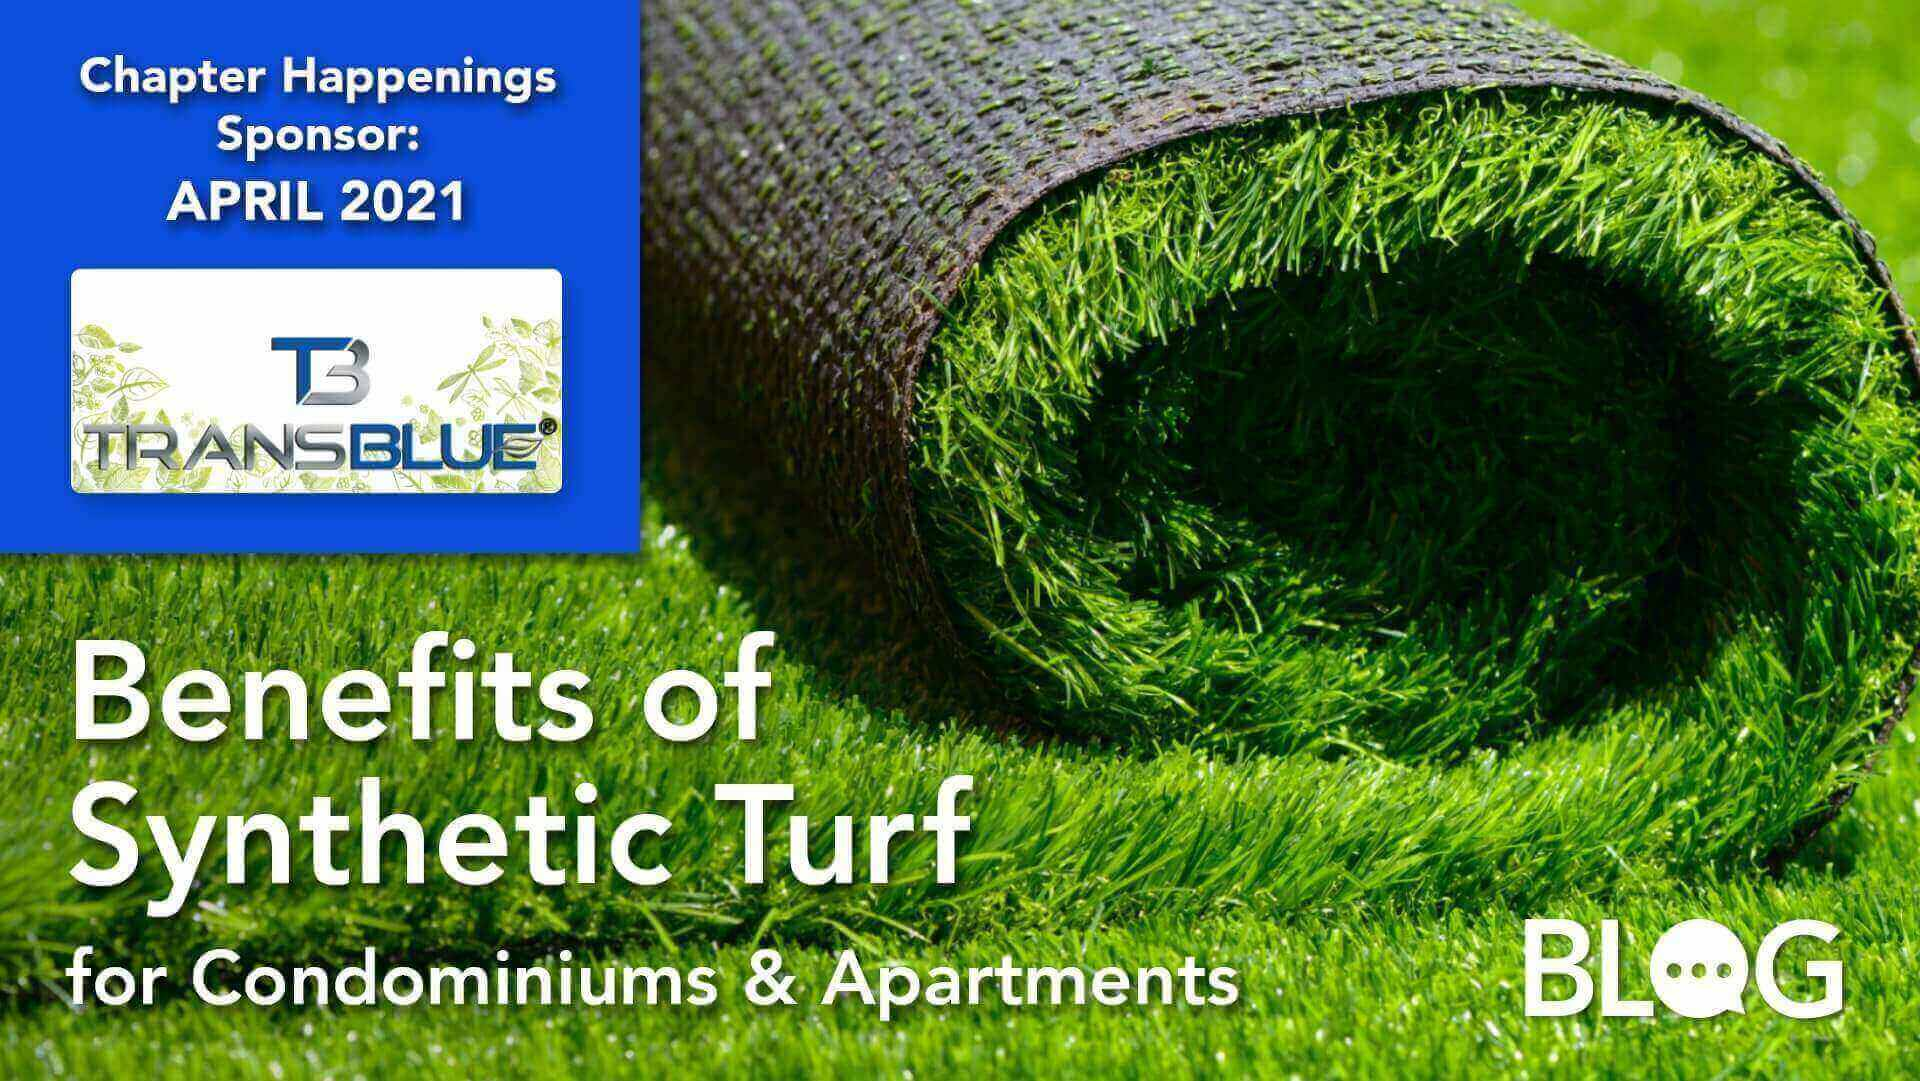 Benefits of Synthetic Turf For Condominiums & Apartments - Chapter Happenings Sponsor - April 2021 - Transblue